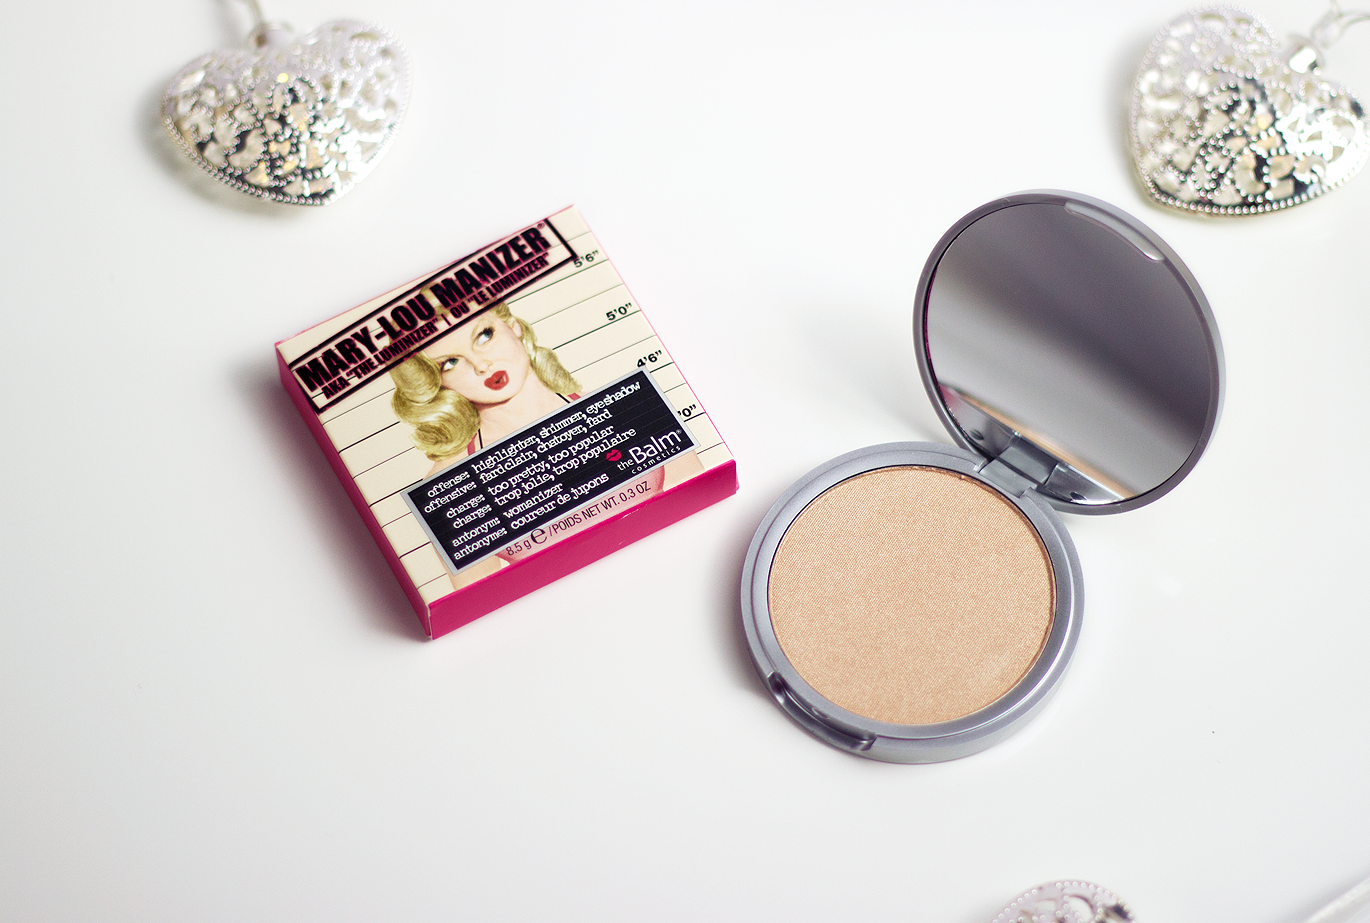 theBalm Mary-Lou Manizer, theBalm Mary-Lou Manizer review, theBalm Mary-Lou Manizer review blog, theBalm Mary-Lou Manizer swatches, theBalm Mary-Lou Manizer swatch